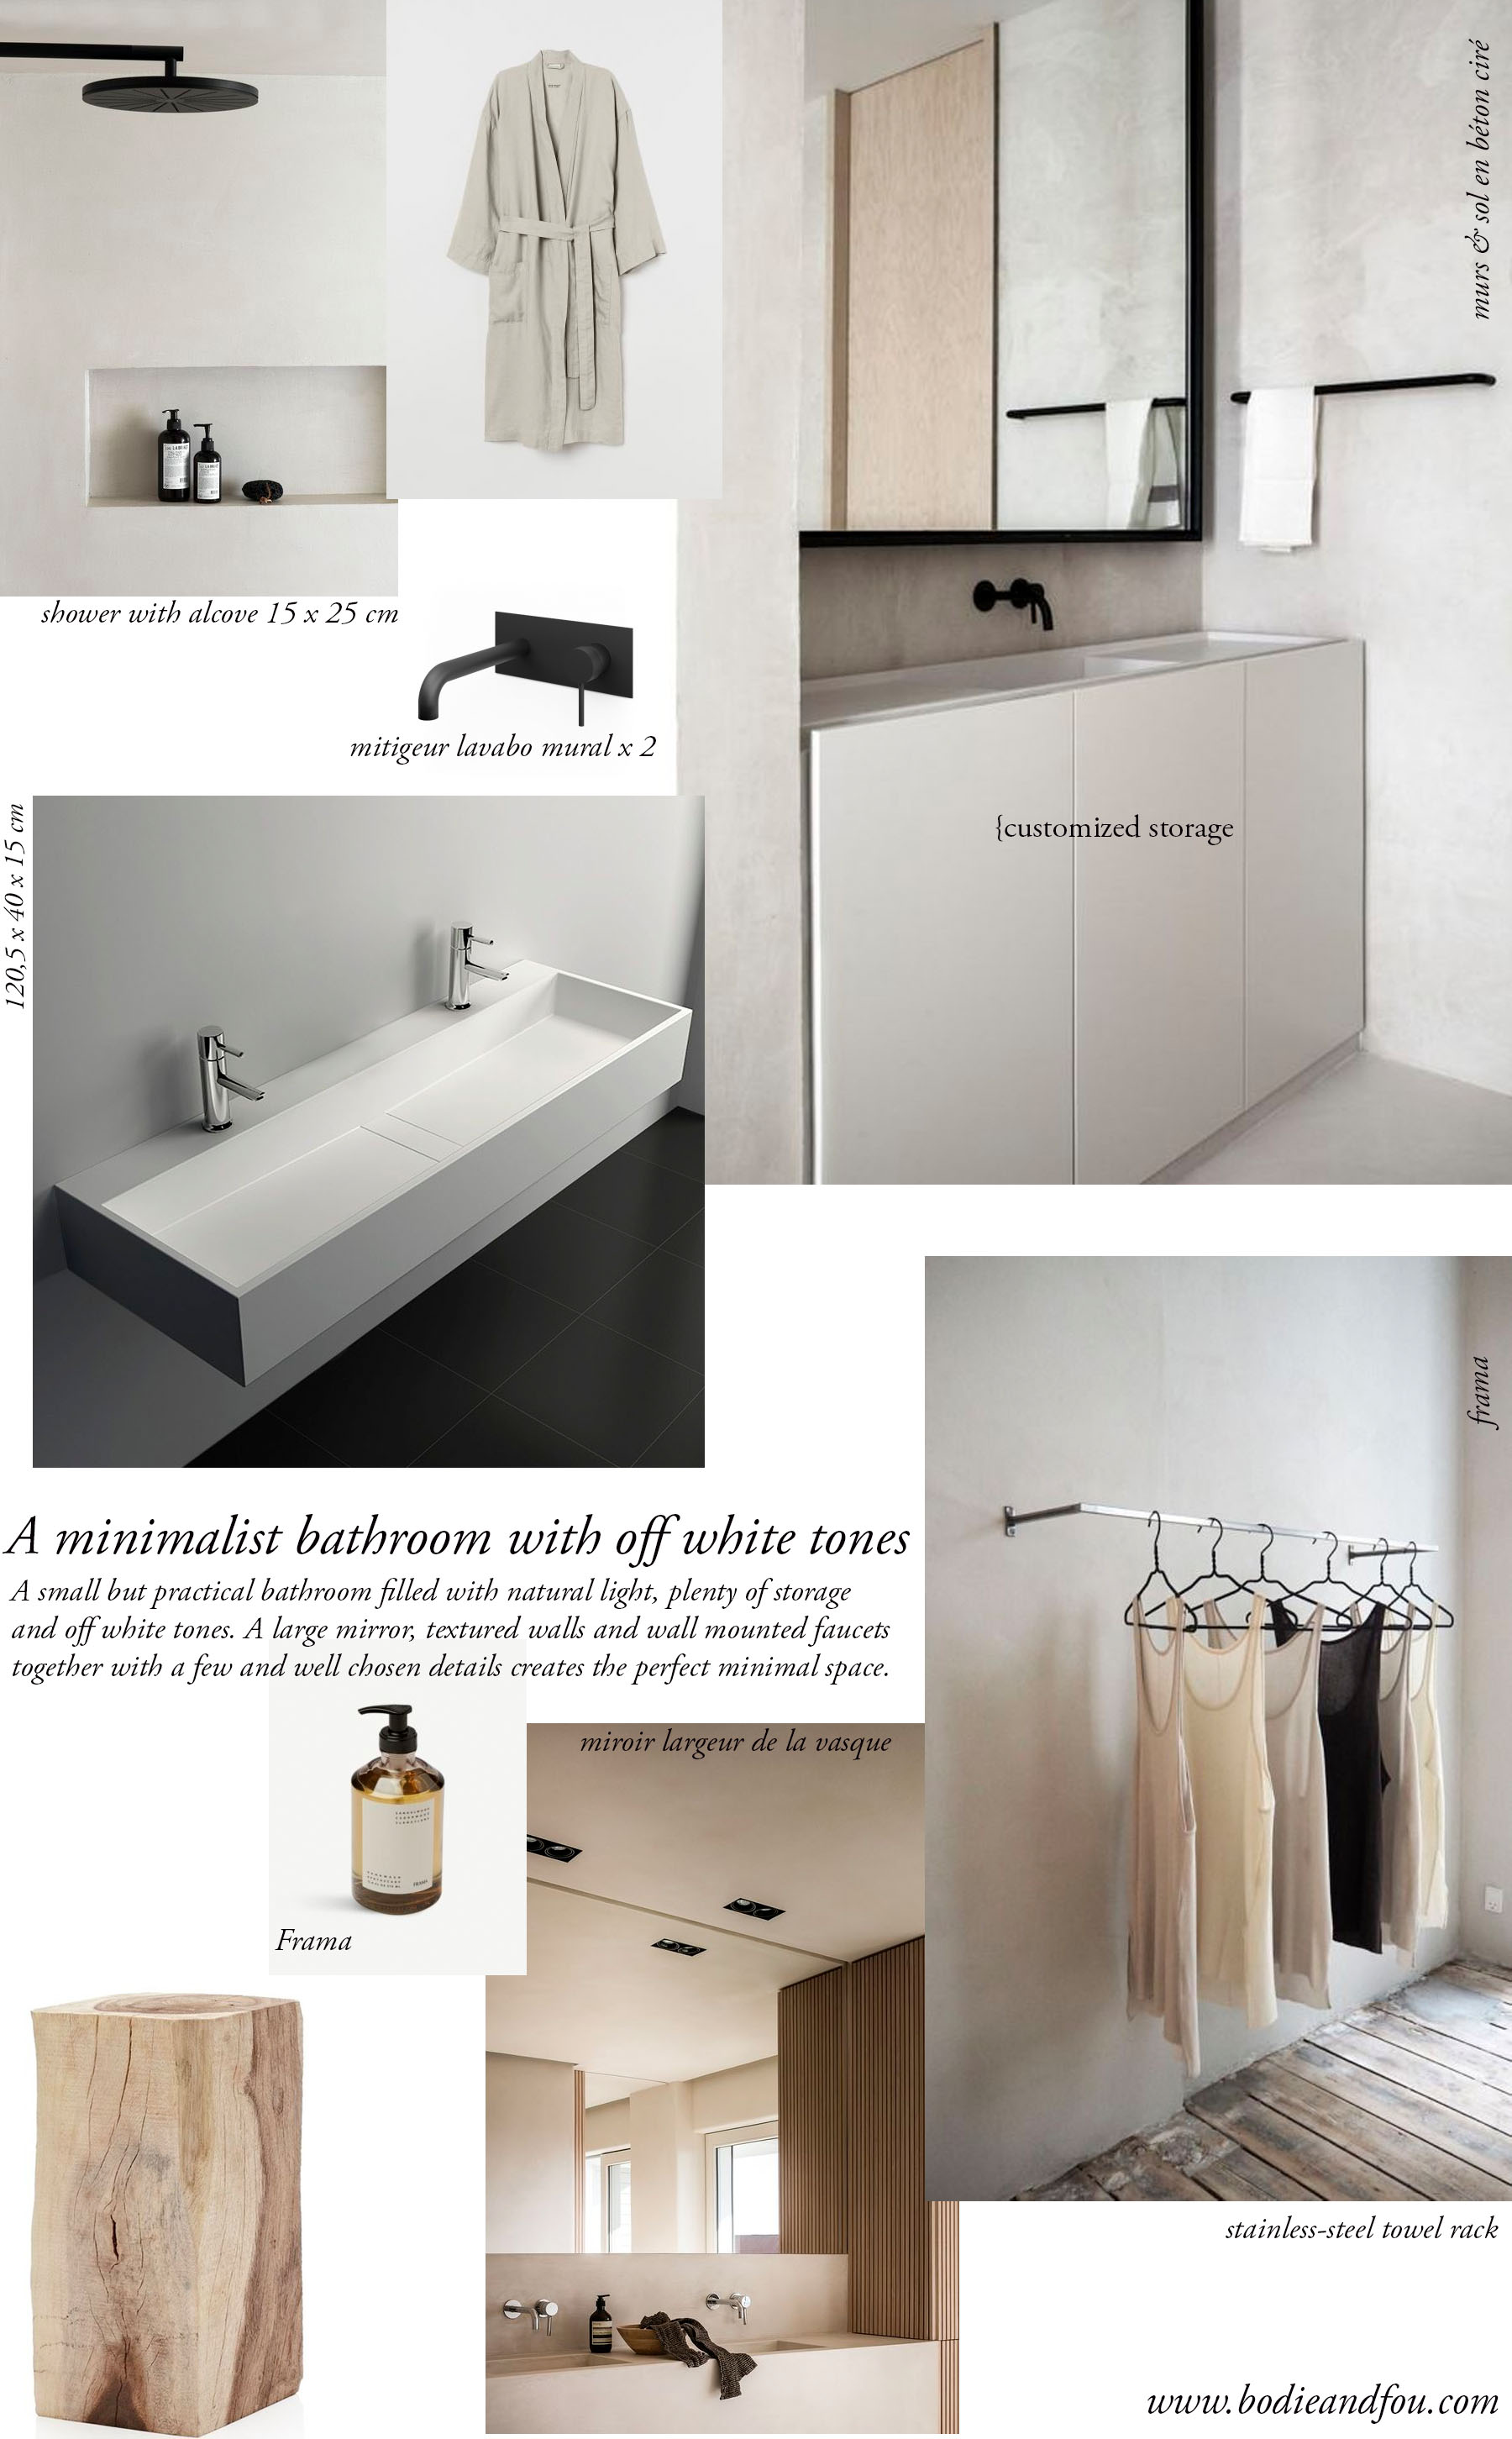 Minimalist Bathroom With Off White Tones Bodie And Fou Studio